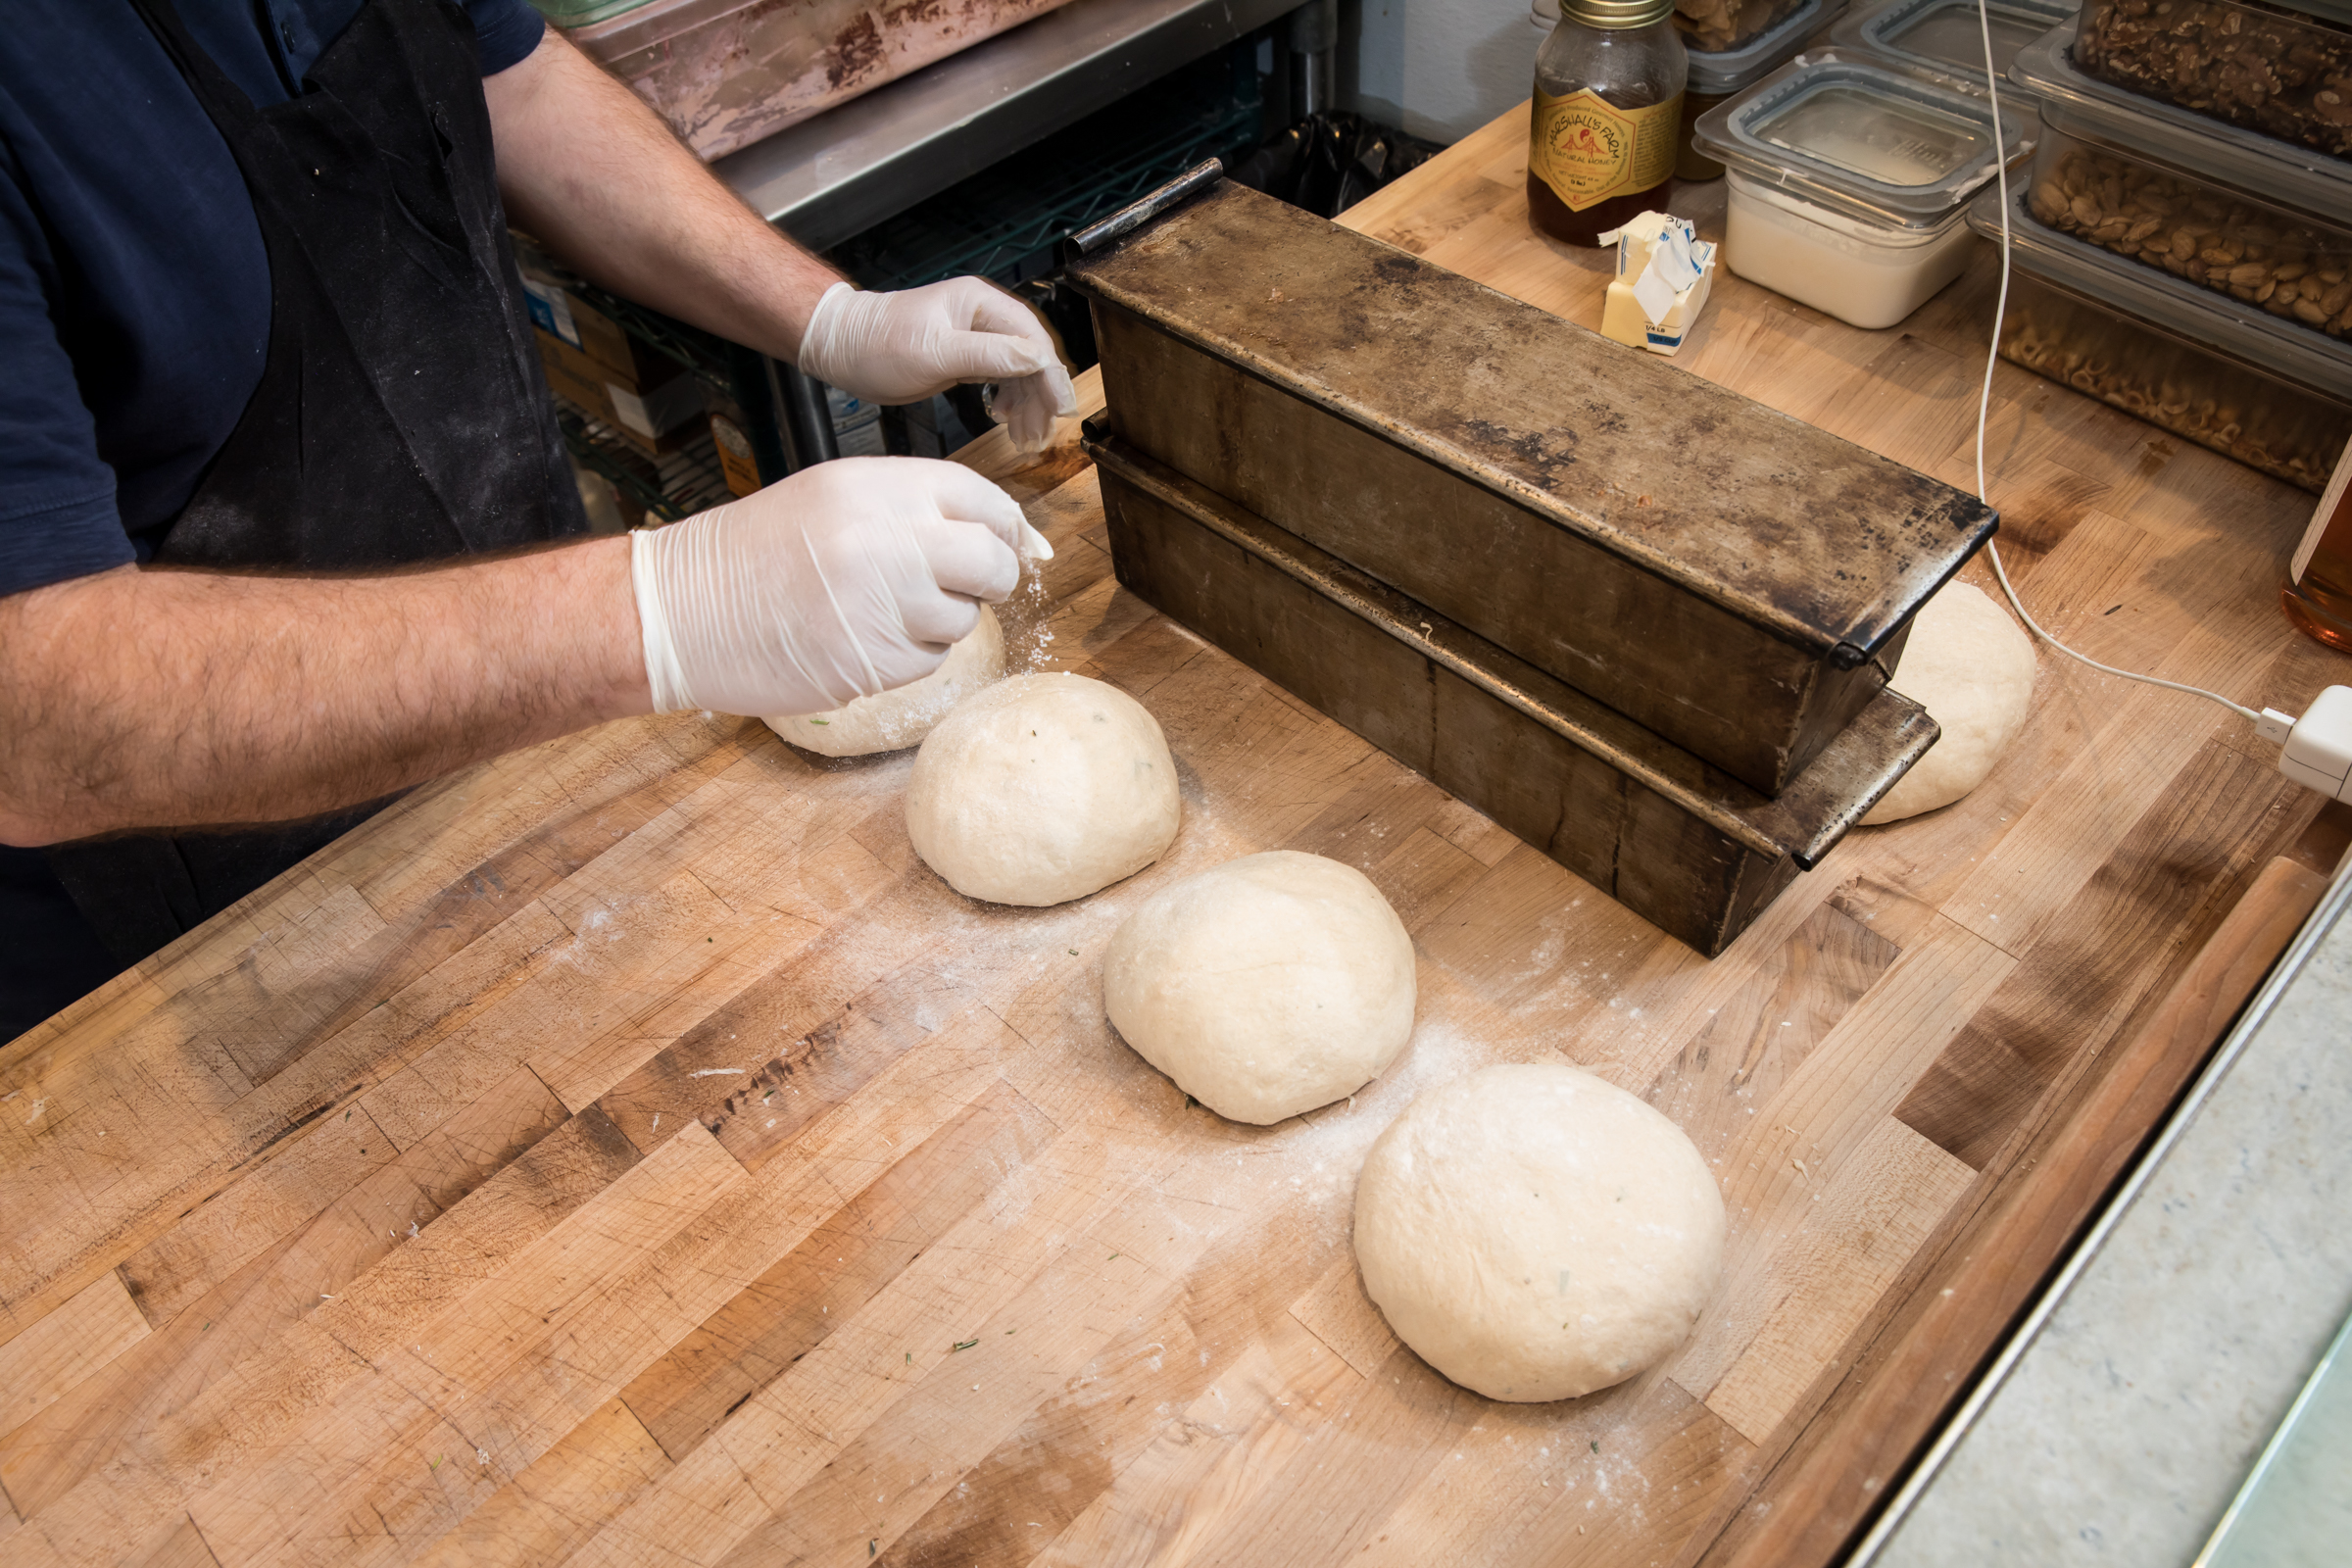 dough production